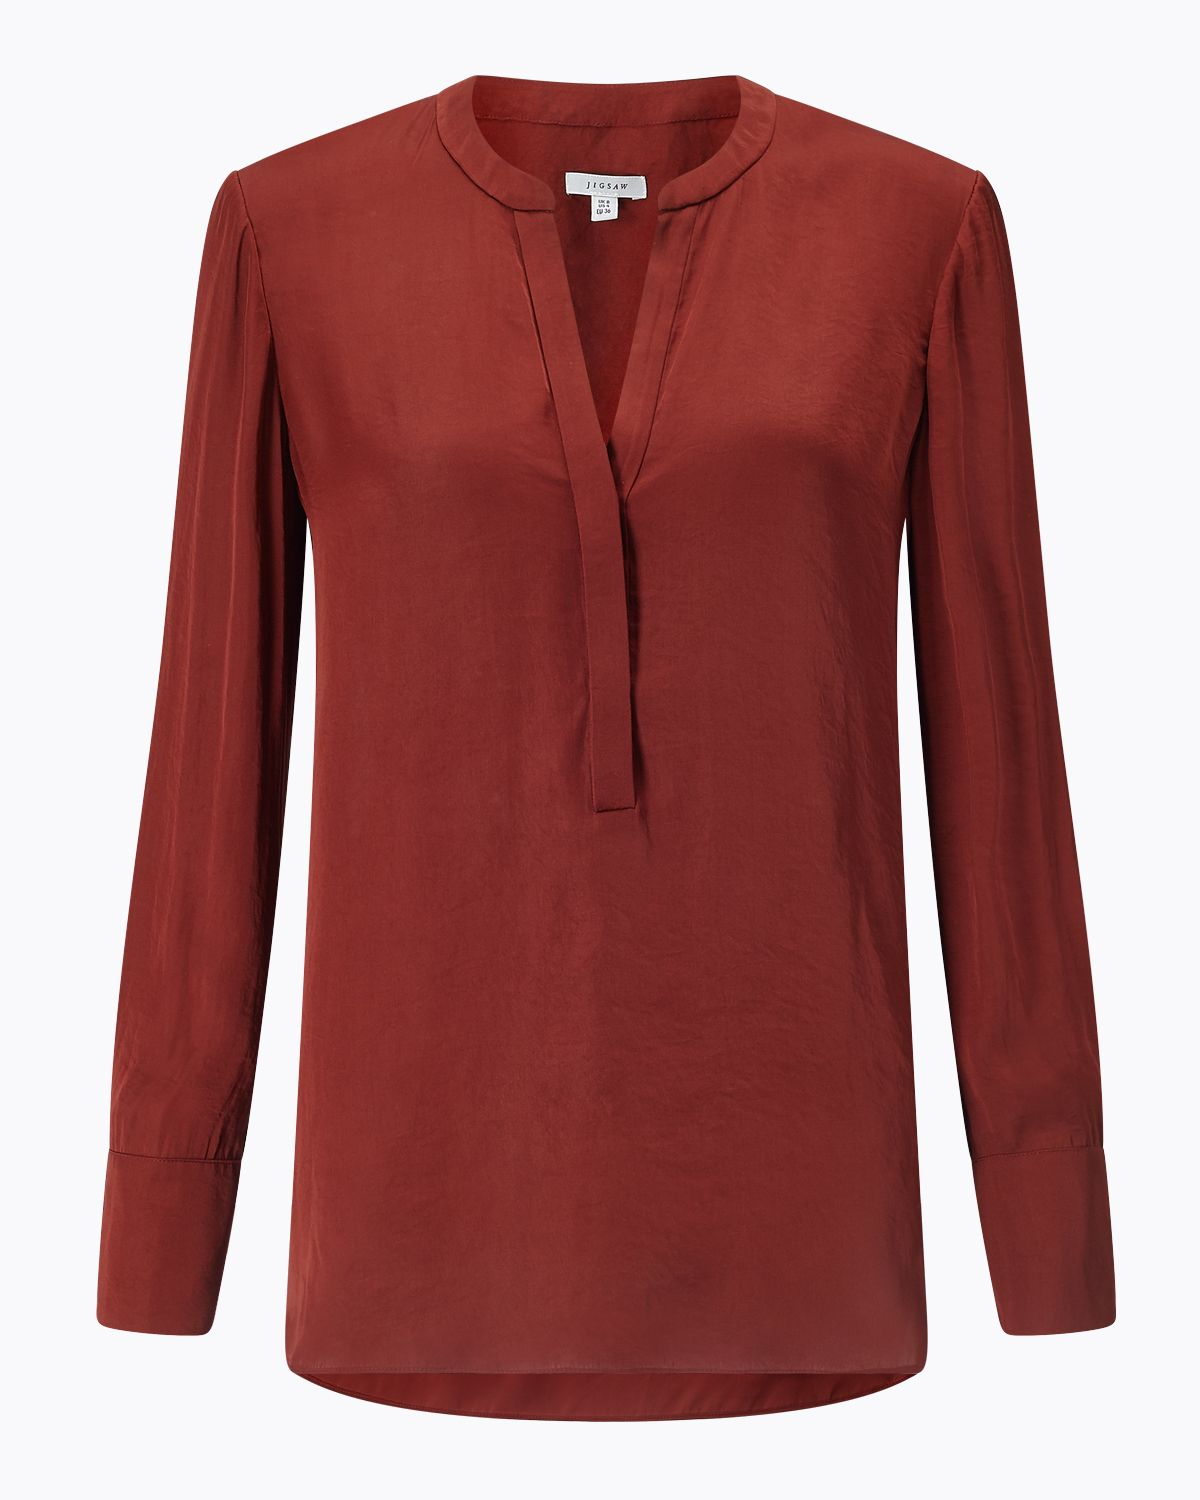 Jigsaw Crocus Drape Shirt, Red